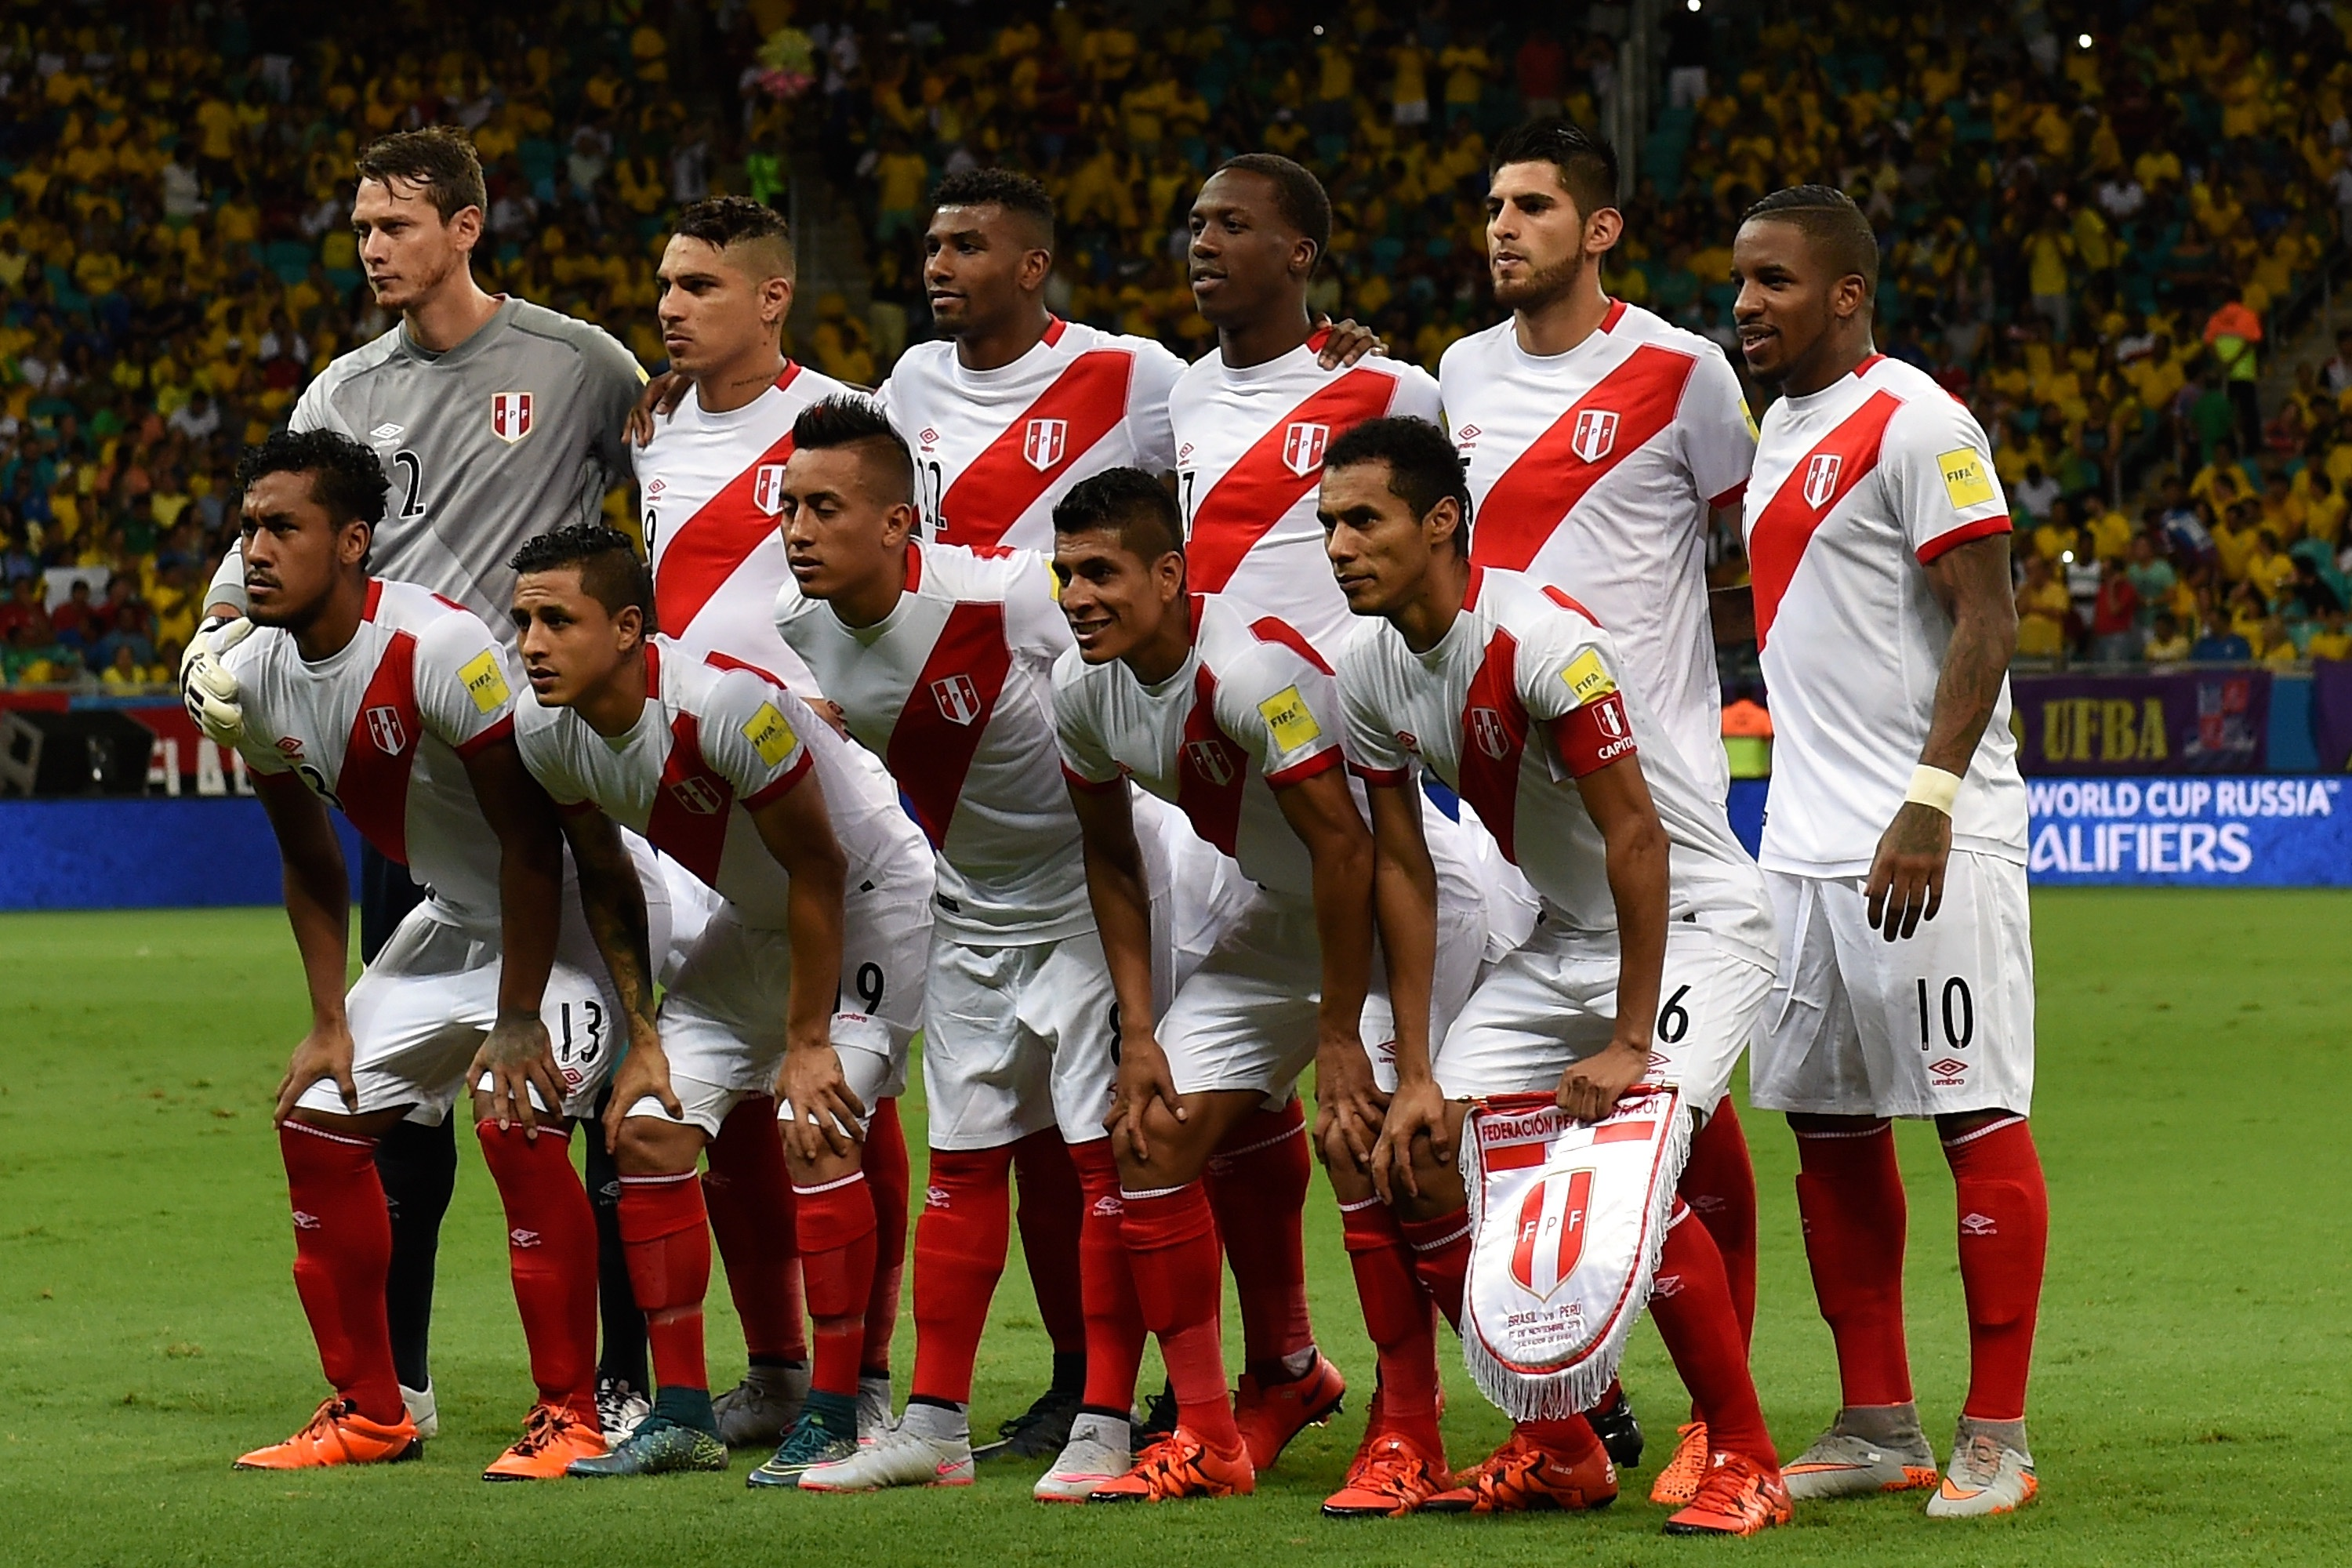 3a17399ad Peru s players pose for a photo before a match between Brazil and Peru as  part of 2018 FIFA World Cup Russia Qualifiers. Photo by Buda Mendes Getty  Images